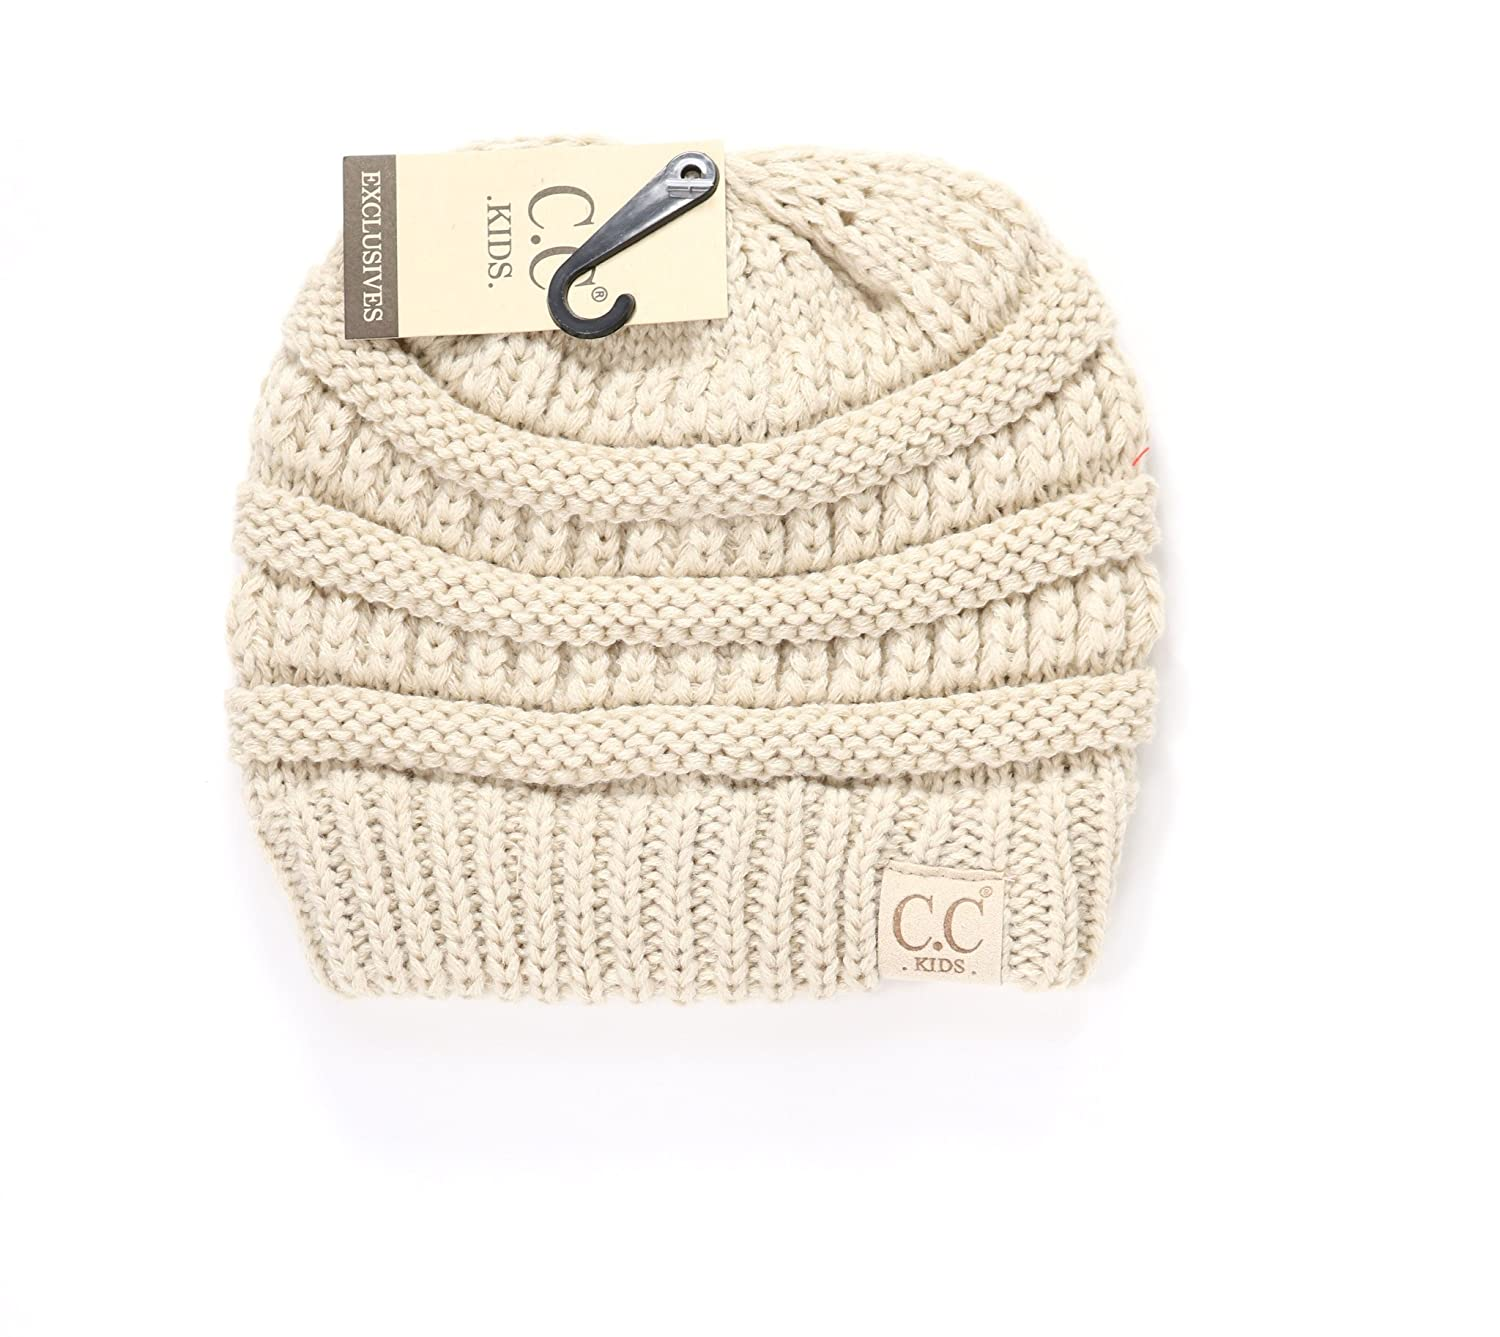 Crane Clothing Co. Women s Kids Solid CC Beanie One Size Beige at Amazon  Women s Clothing store  298e35df484